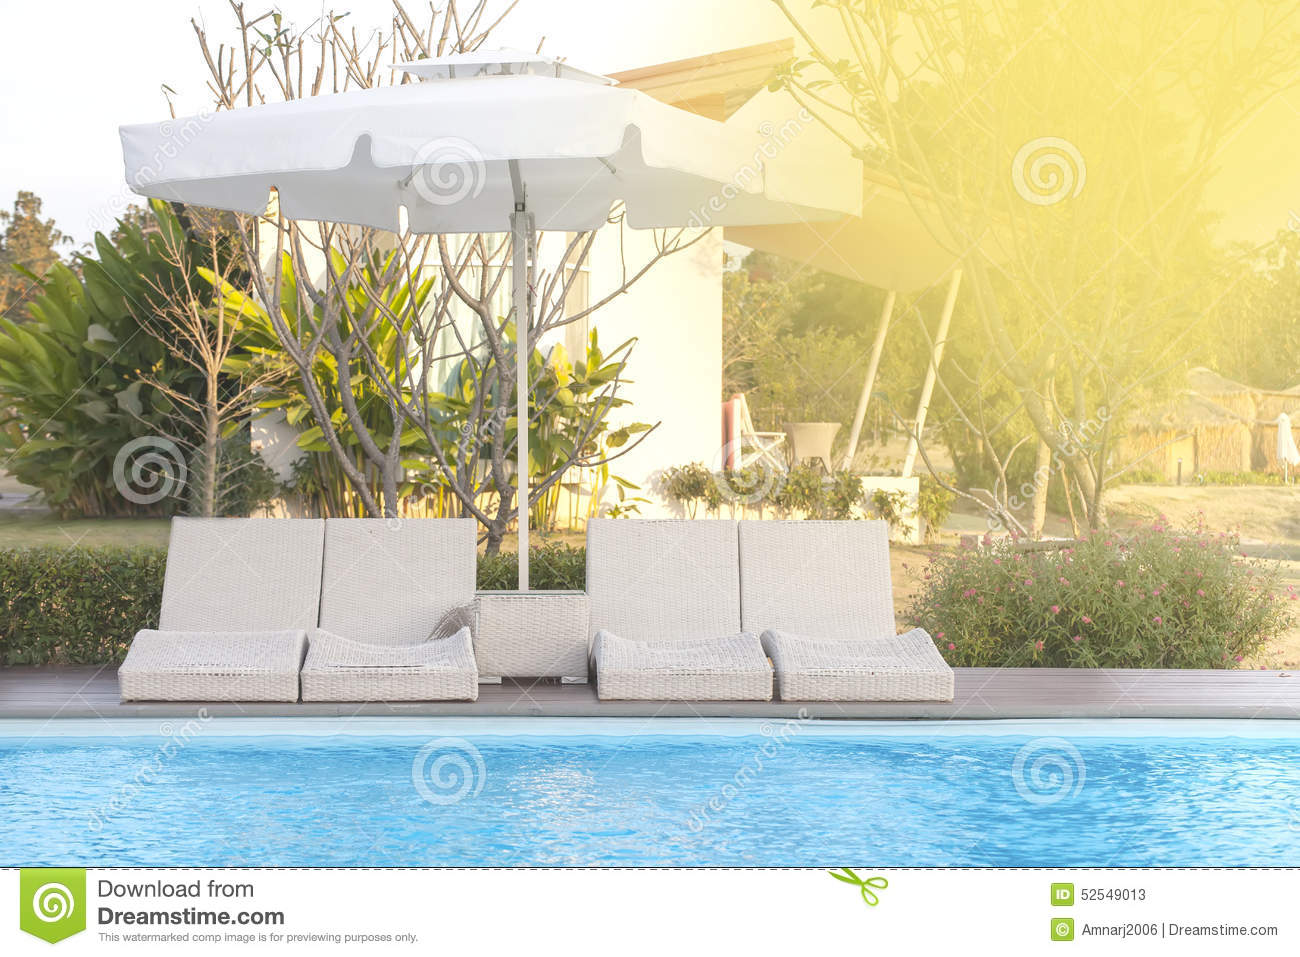 poolside bed stock image image of outdoor interior   - royaltyfree stock photo